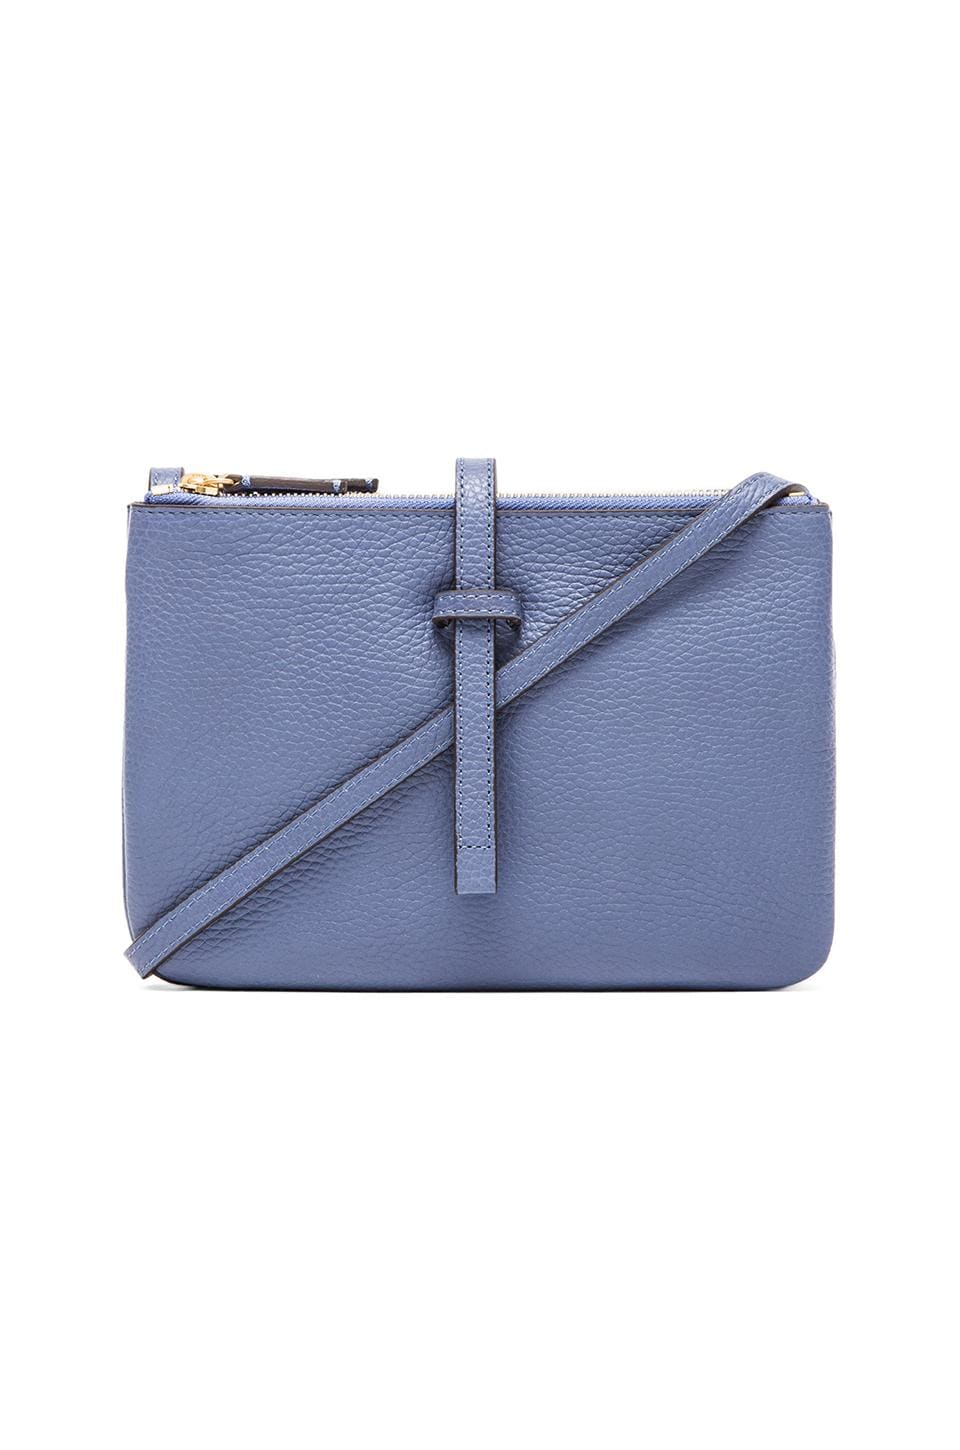 Annabel Ingall Jojo Crossbody in Sky